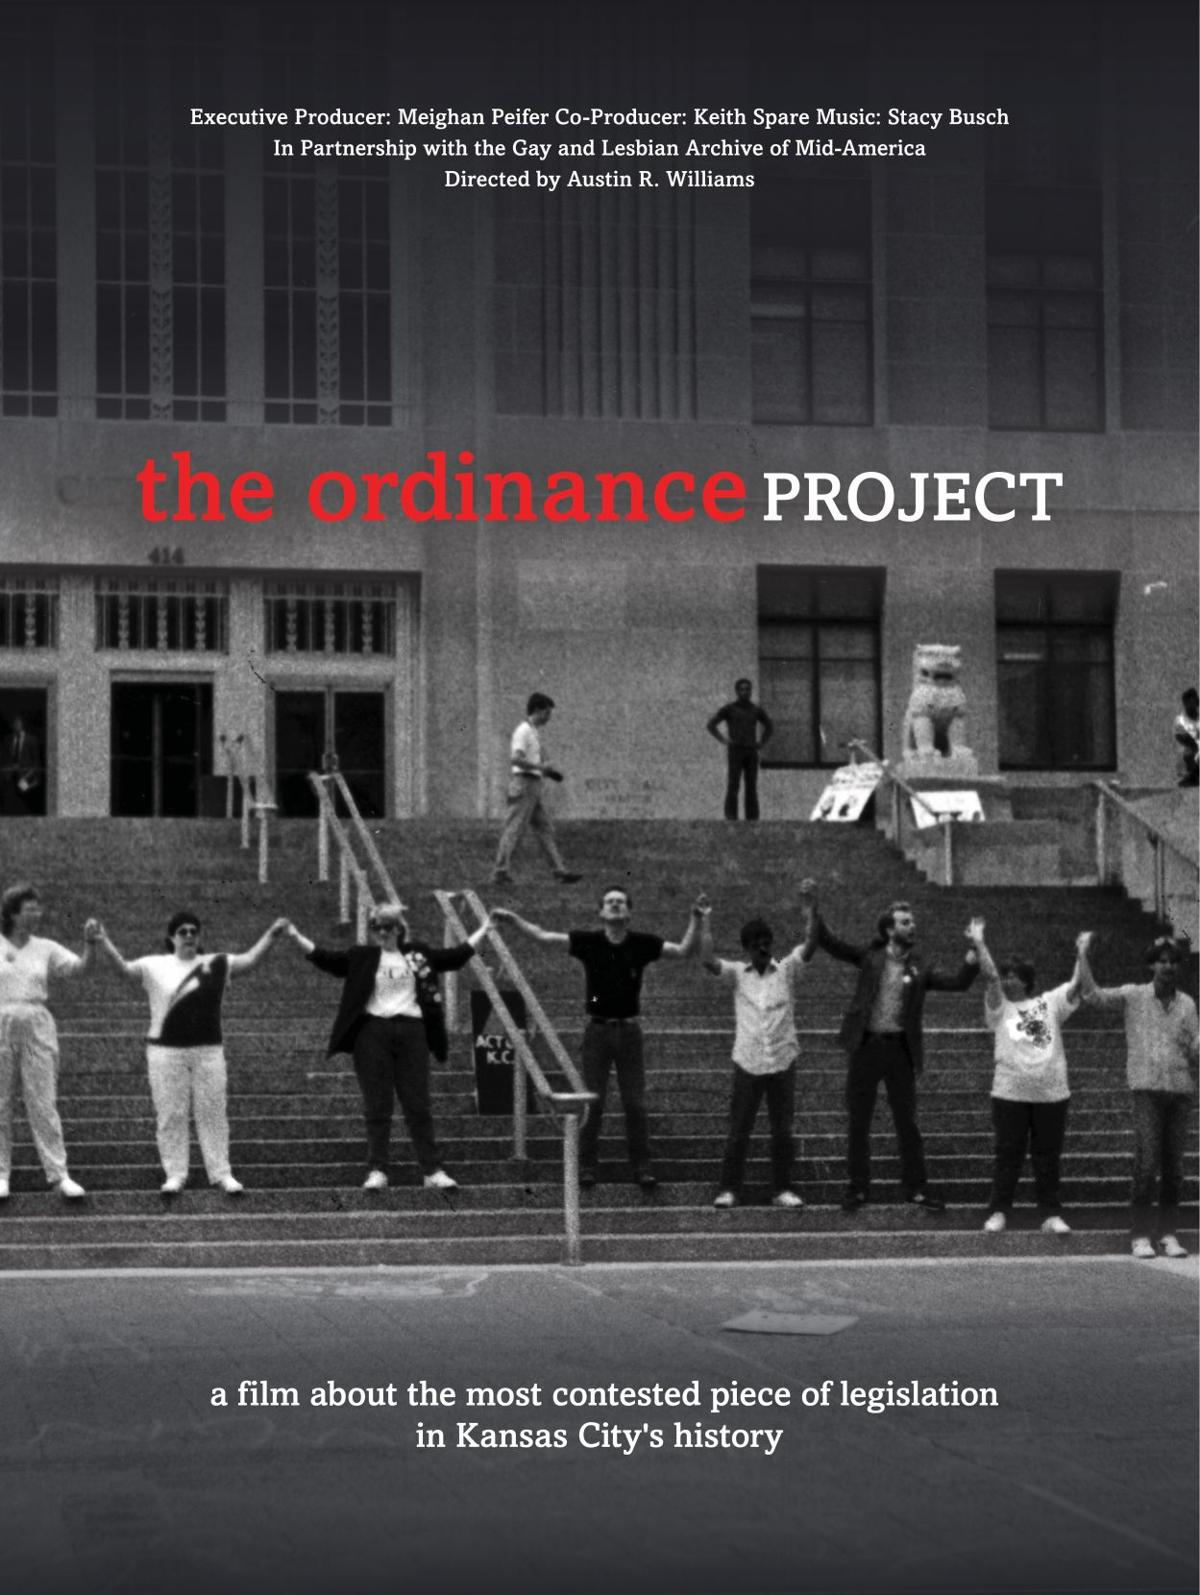 THE ORDINANCE PROJECT Poster